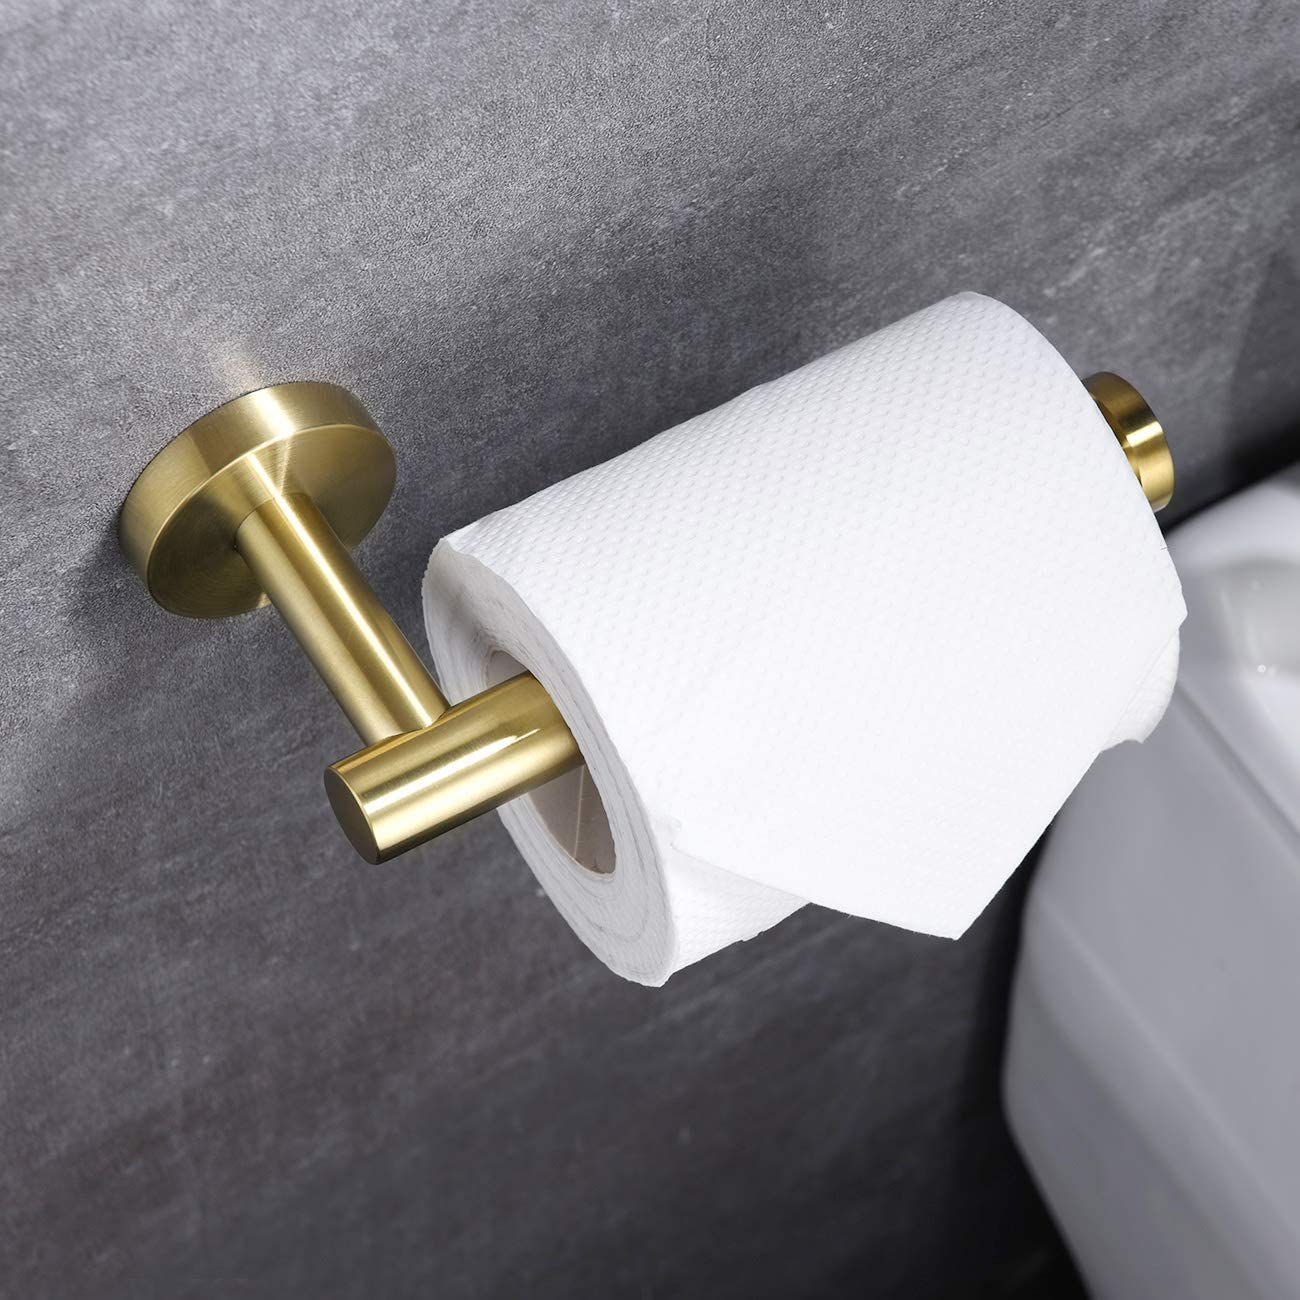 KLXHOME SUS304 Stainless Steel Bathroom Lavatory Toilet Paper Holder 5 inch TP Holder Paper Towel Dispenser Wall Mount Brushed Gold C01G12